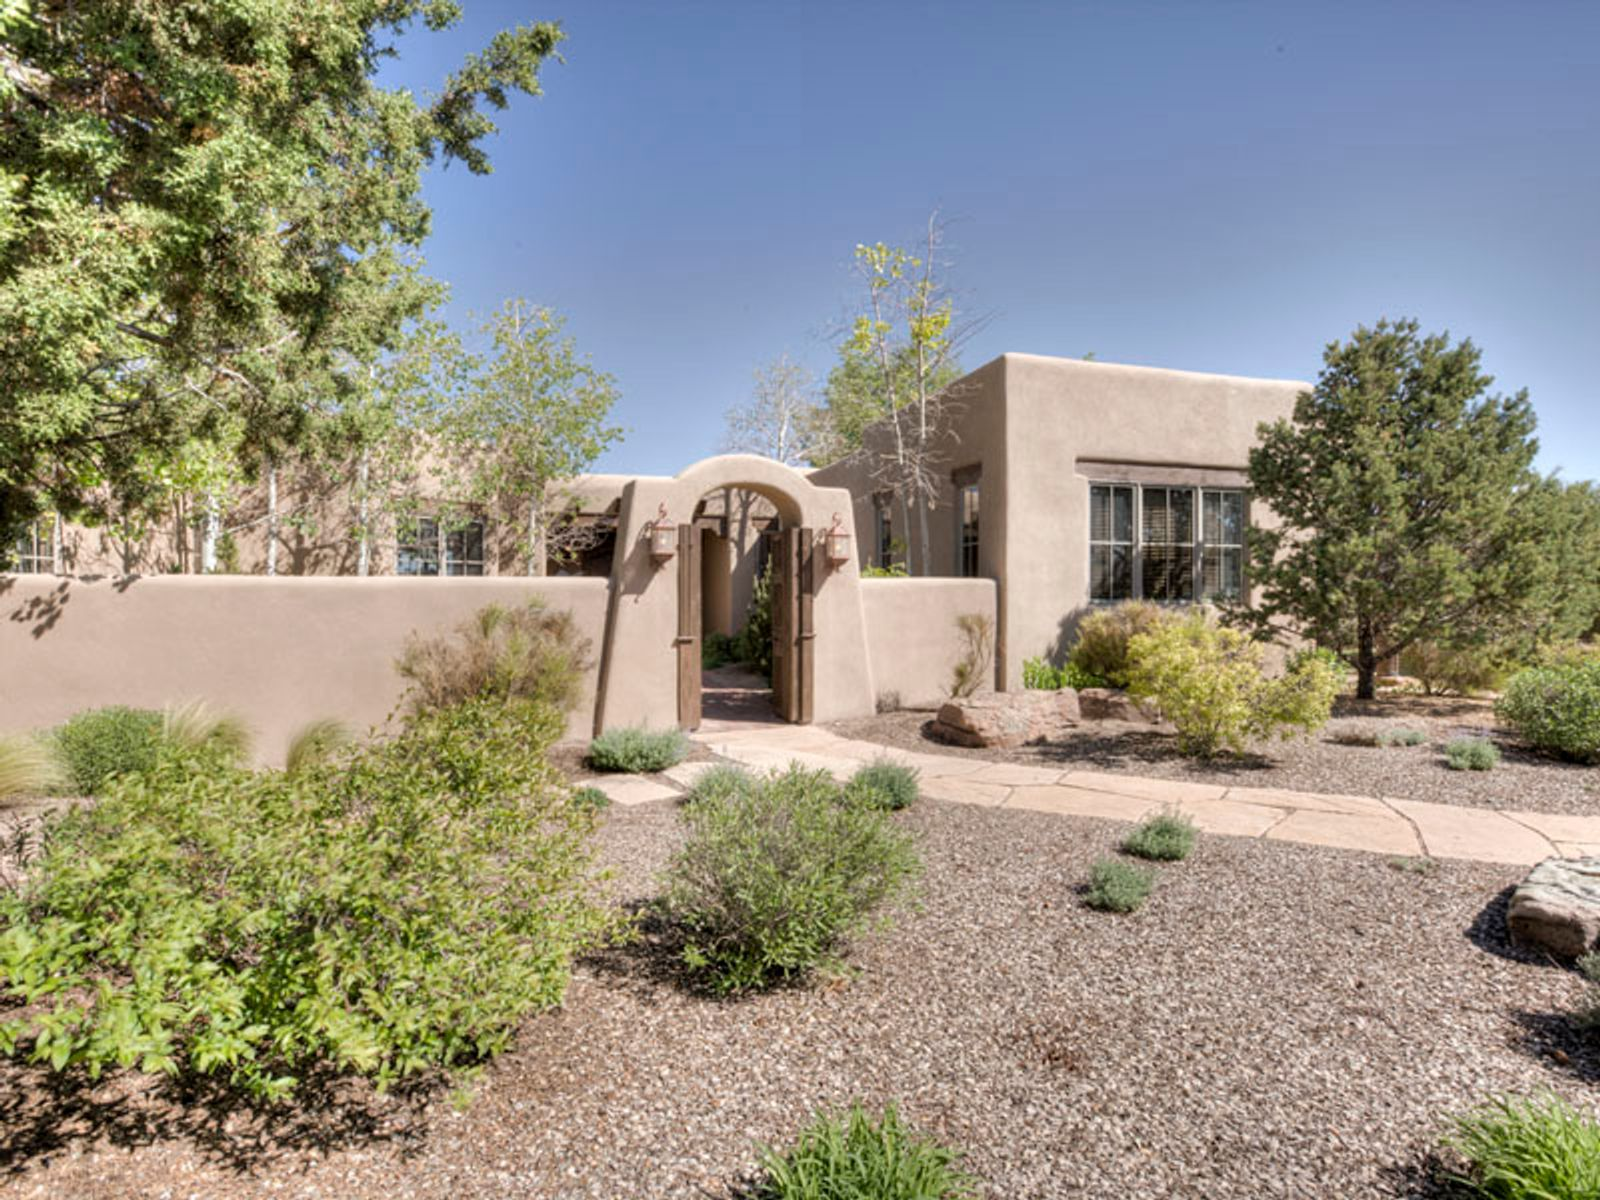 27 Wildhorse, Santa Fe NM Single Family Home - Santa Fe Real Estate